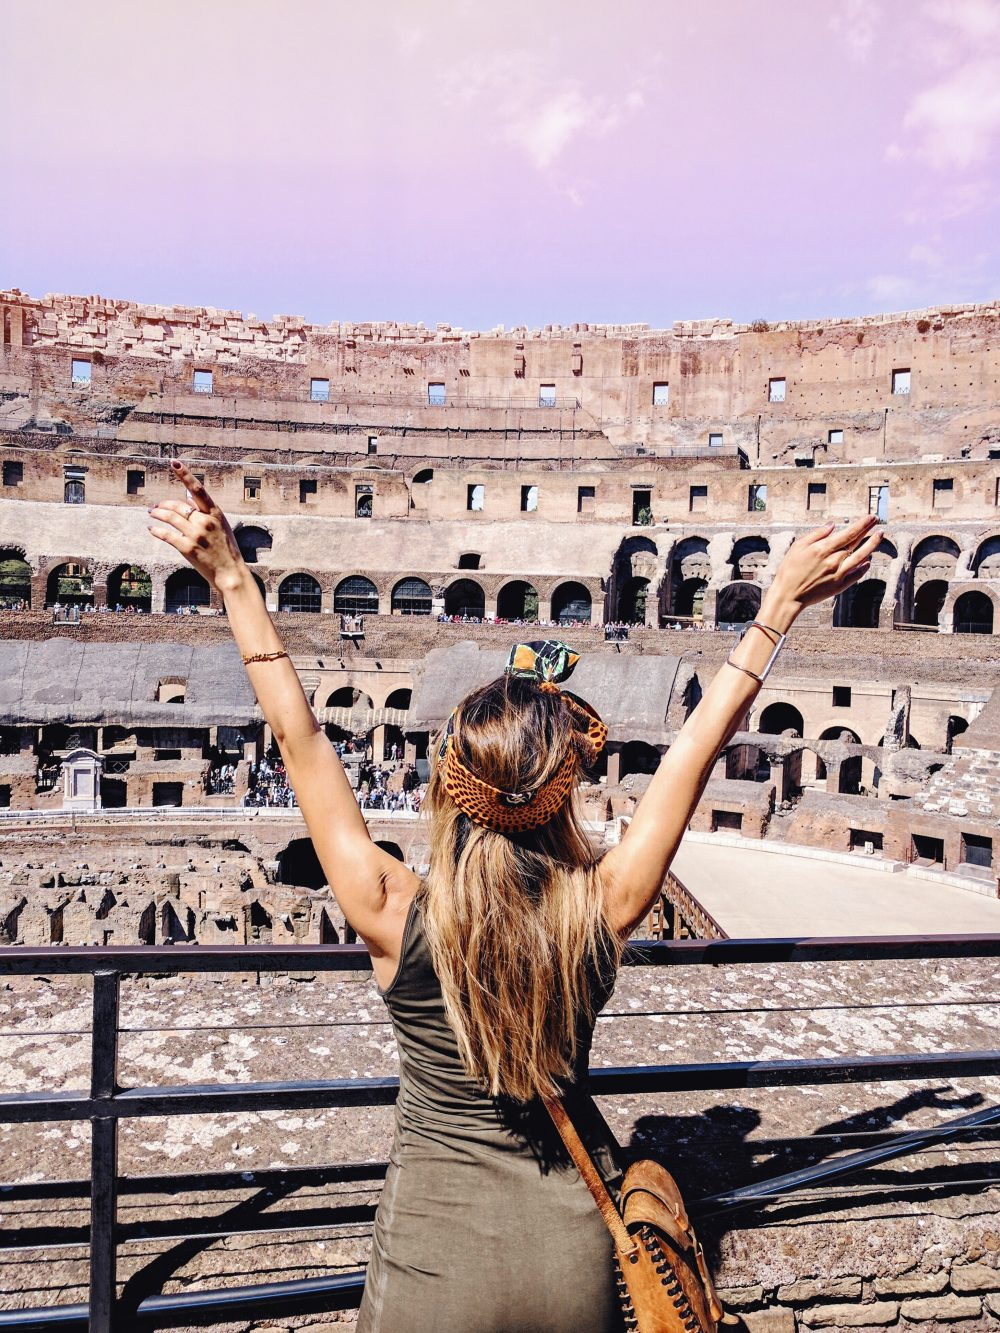 Whitney's Wonderland UK & USA Top Luxury Travel Blogger shares a complete and unique Travel Guide to Rome including where to stay, eat, and what to do